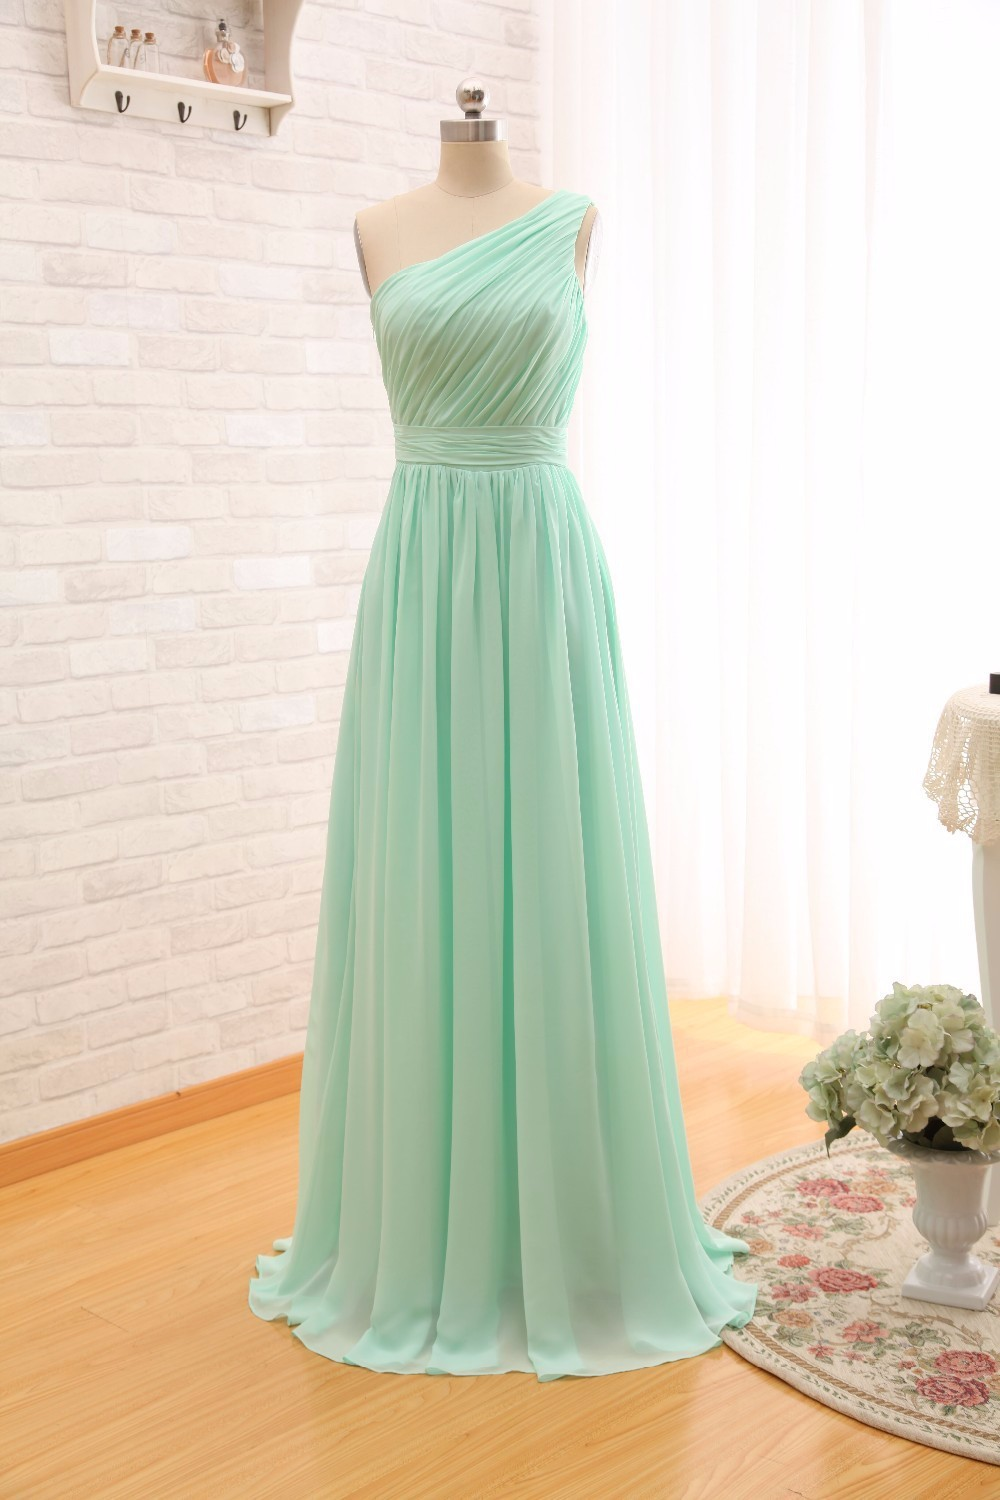 Ever-Beauty-Mint-Green-Long-Chiffon-A-Line-Pleated-Bridesmaid-Dress-Under-50-Wedding-Party-Dress (3)